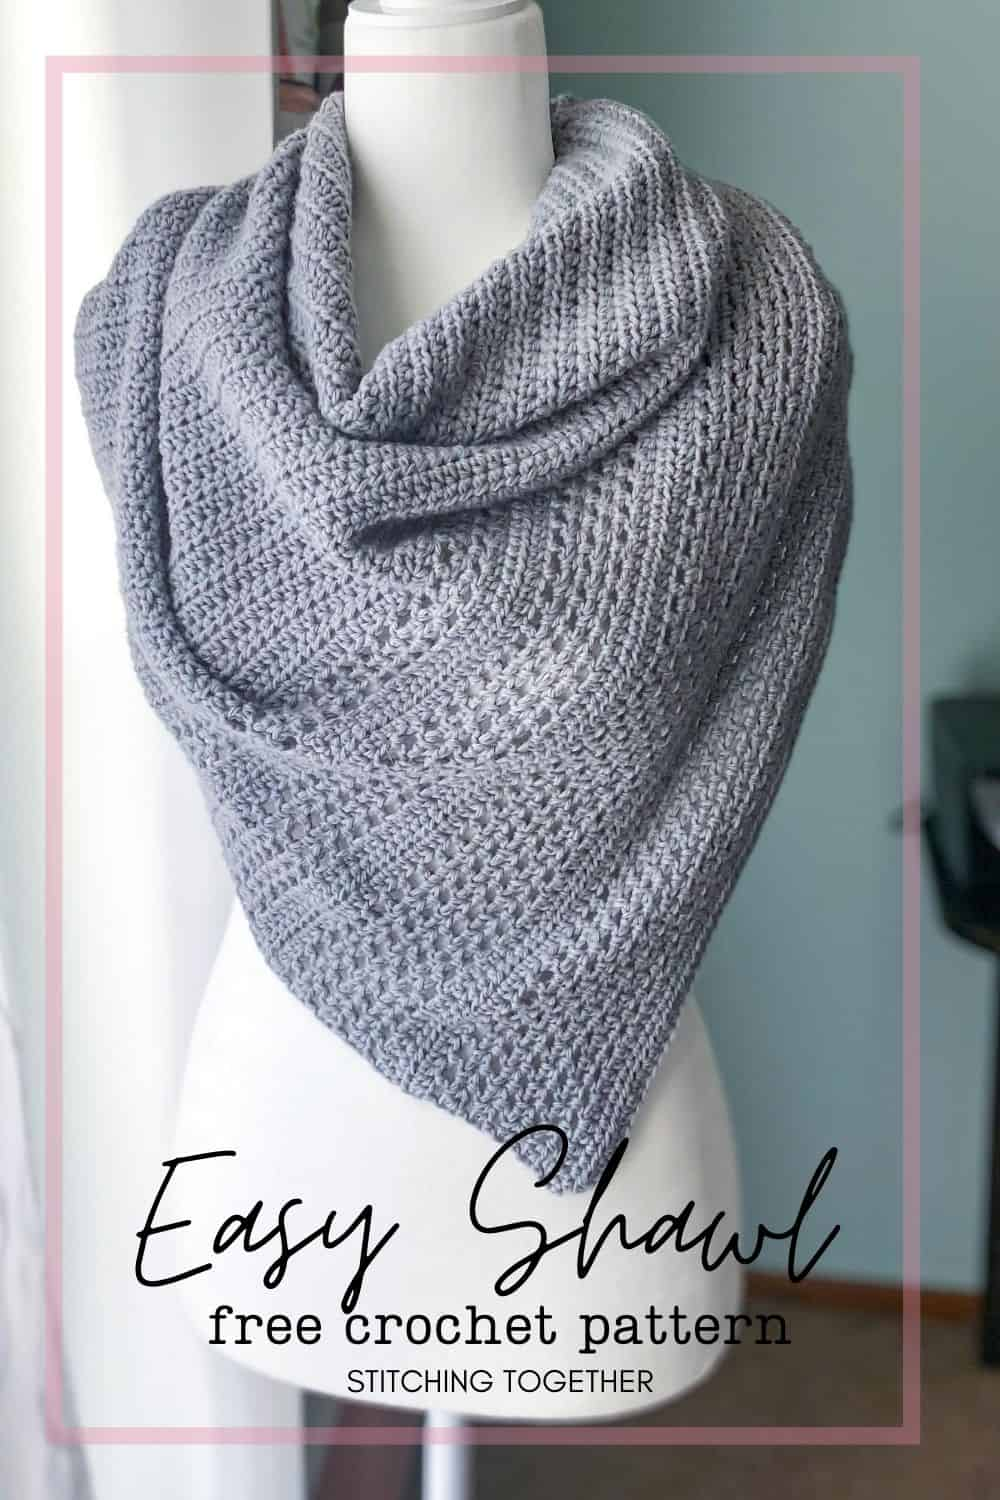 mannequin wearing gray crochet triangle shawl